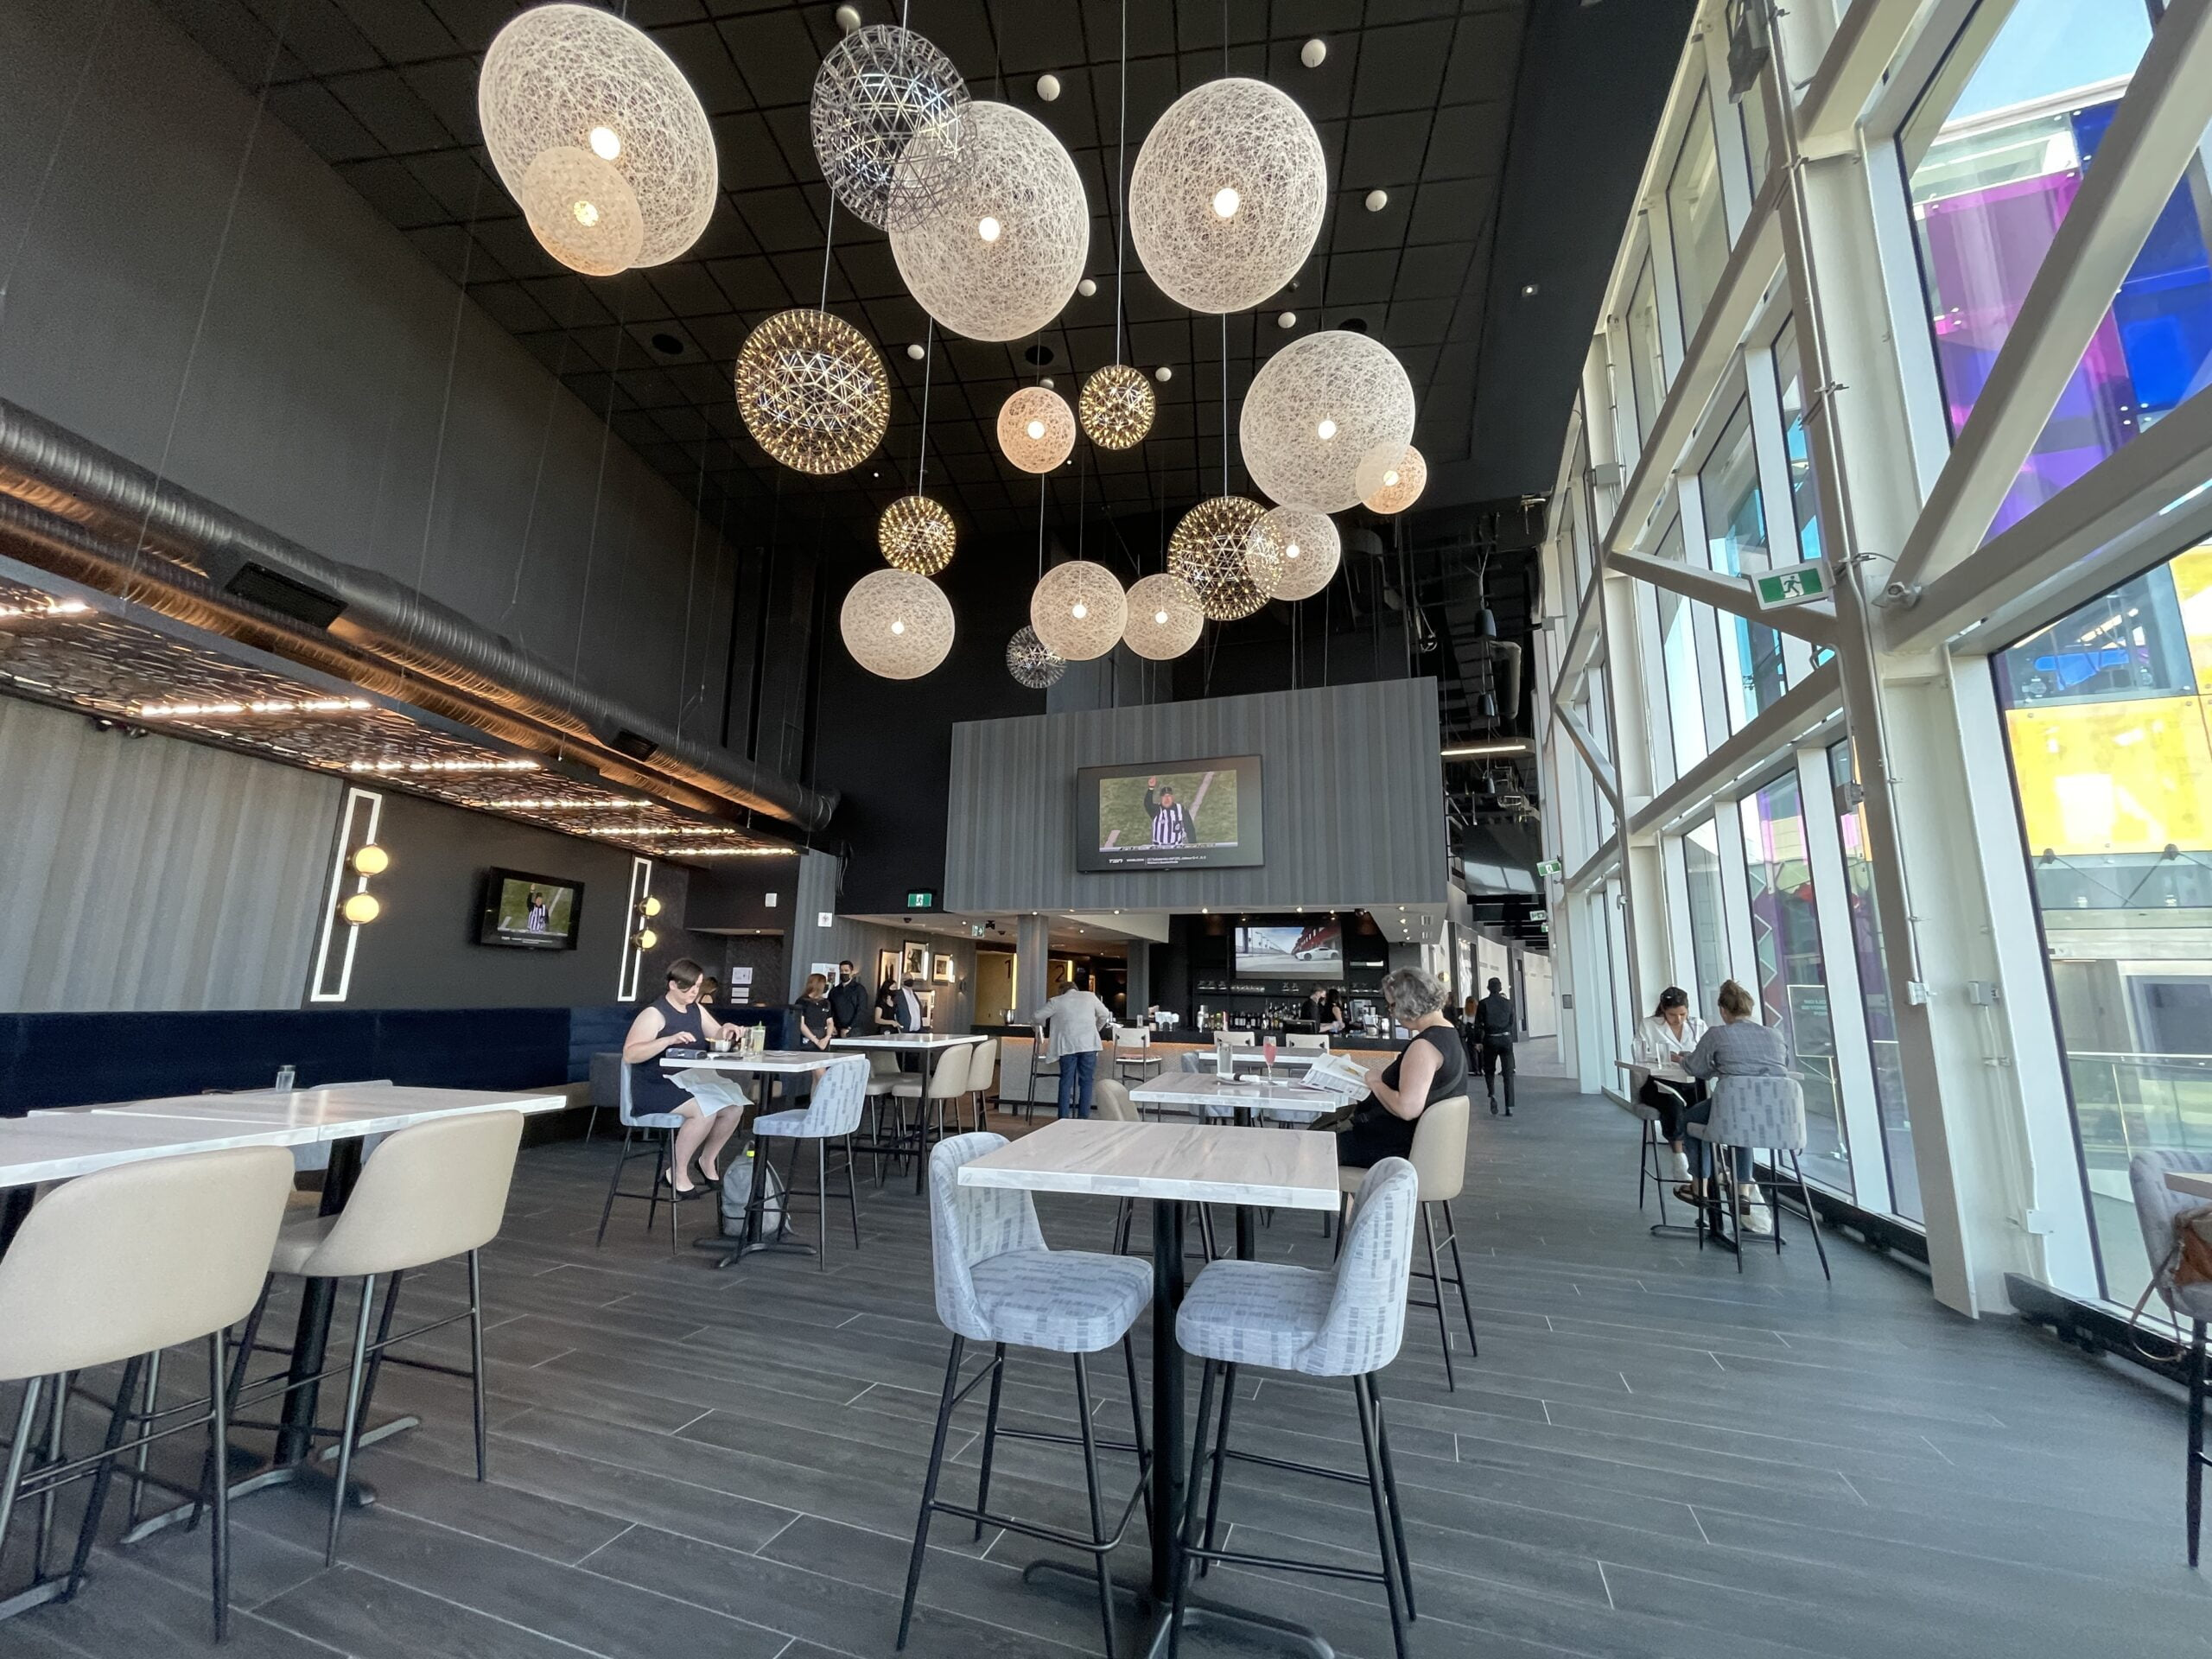 Cineplex VIP Lounge at The Amazing Brentwood